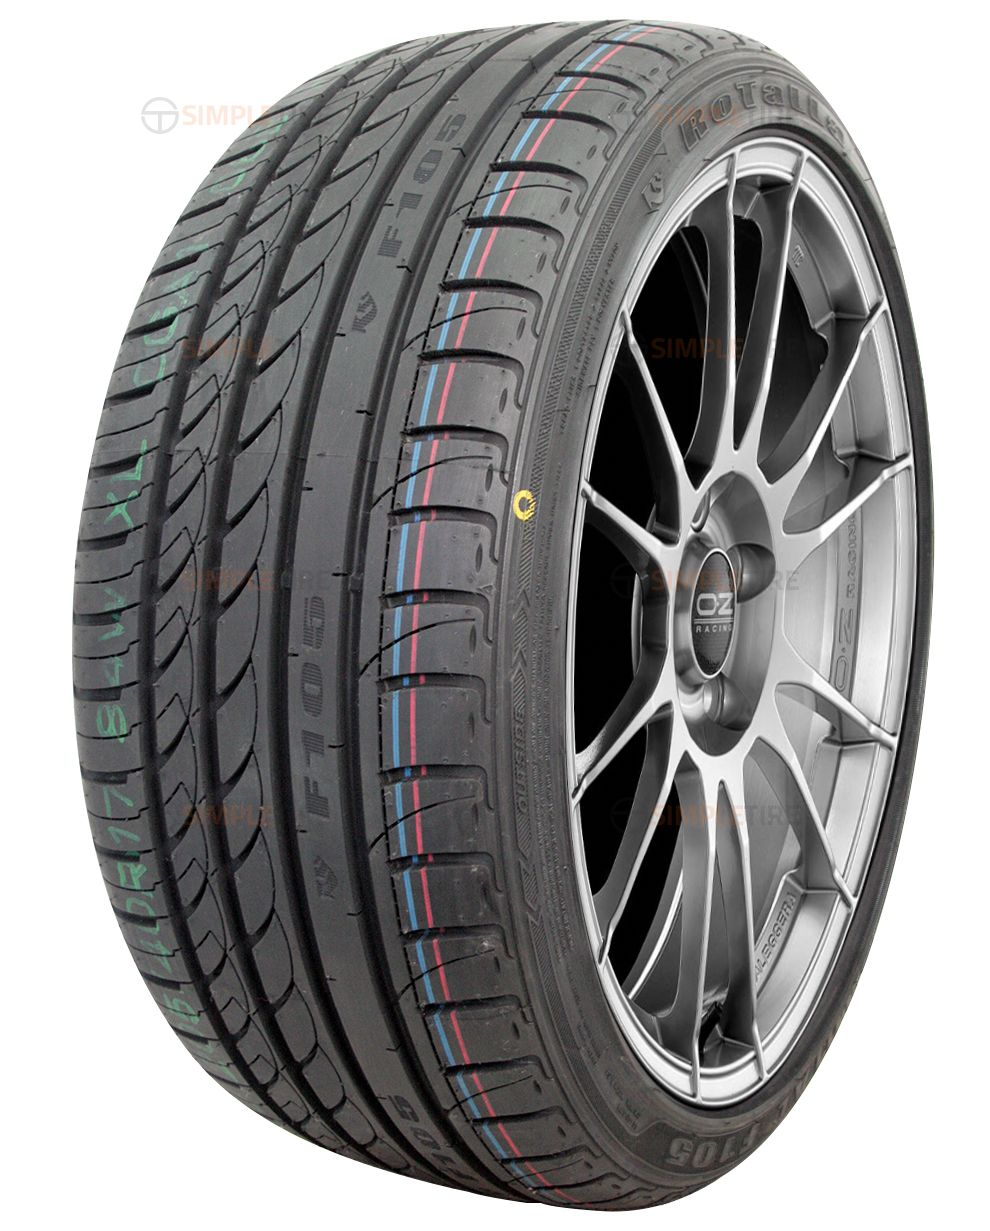 National Rotalla F105 P215/40R-16 11299033